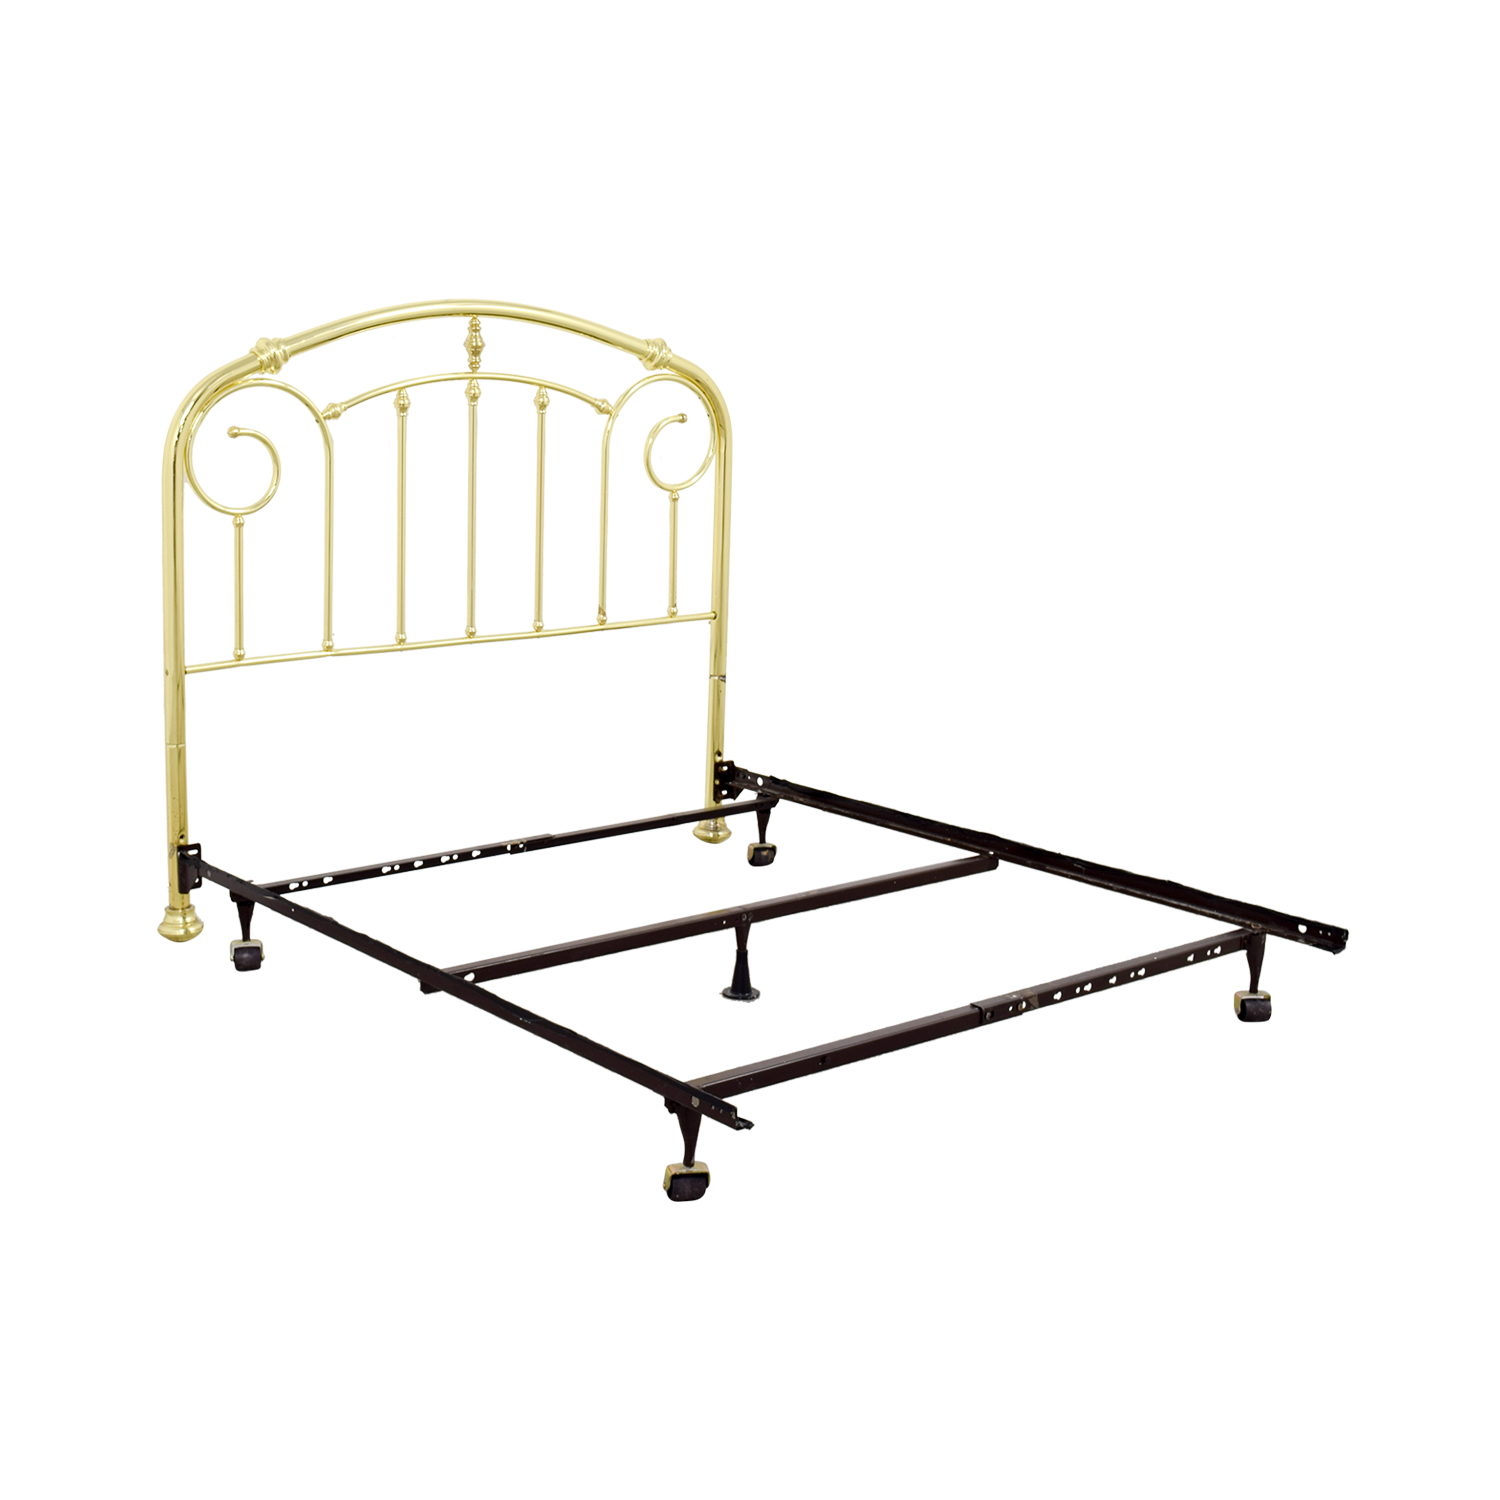 Brass and Metal Bed Frame for sale